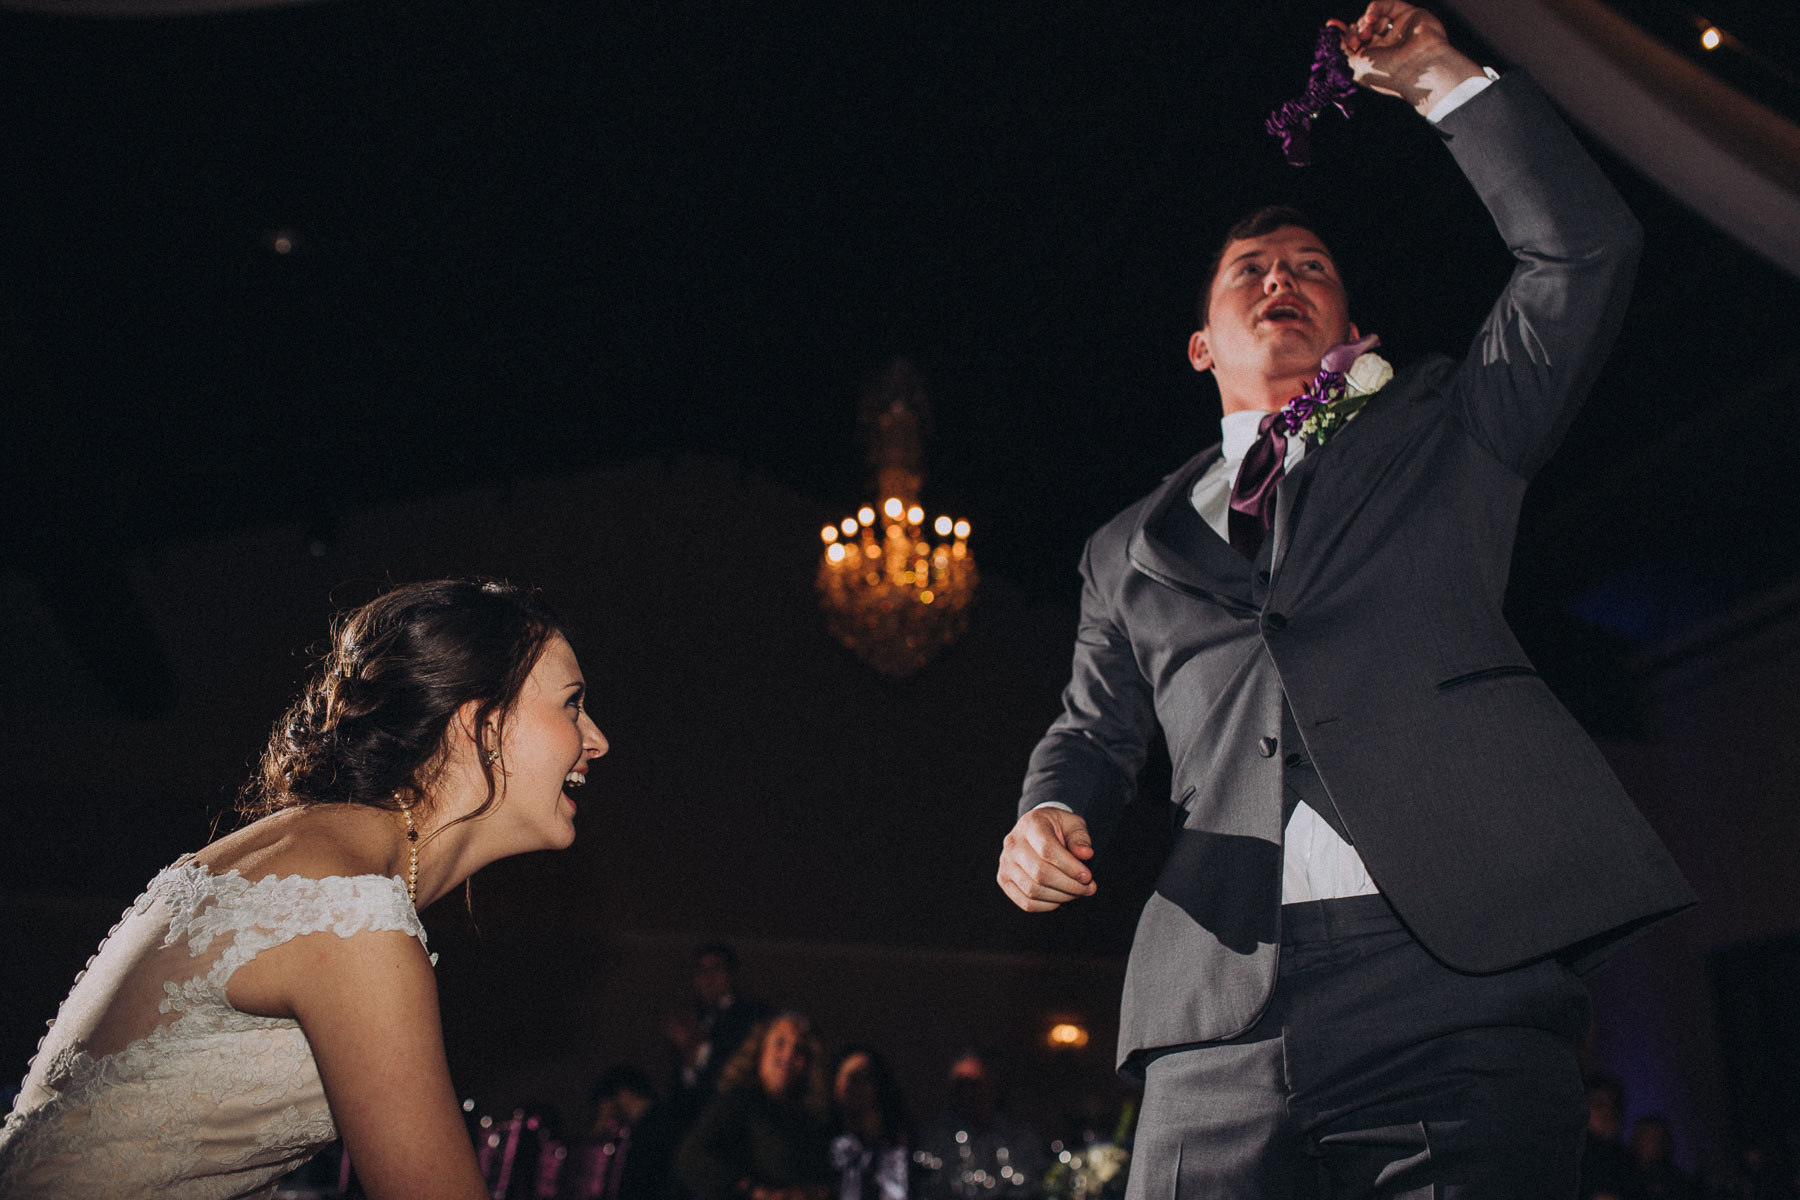 Bride laughs as groom removes garter during wedding reception at Wedgewood Black Forest.